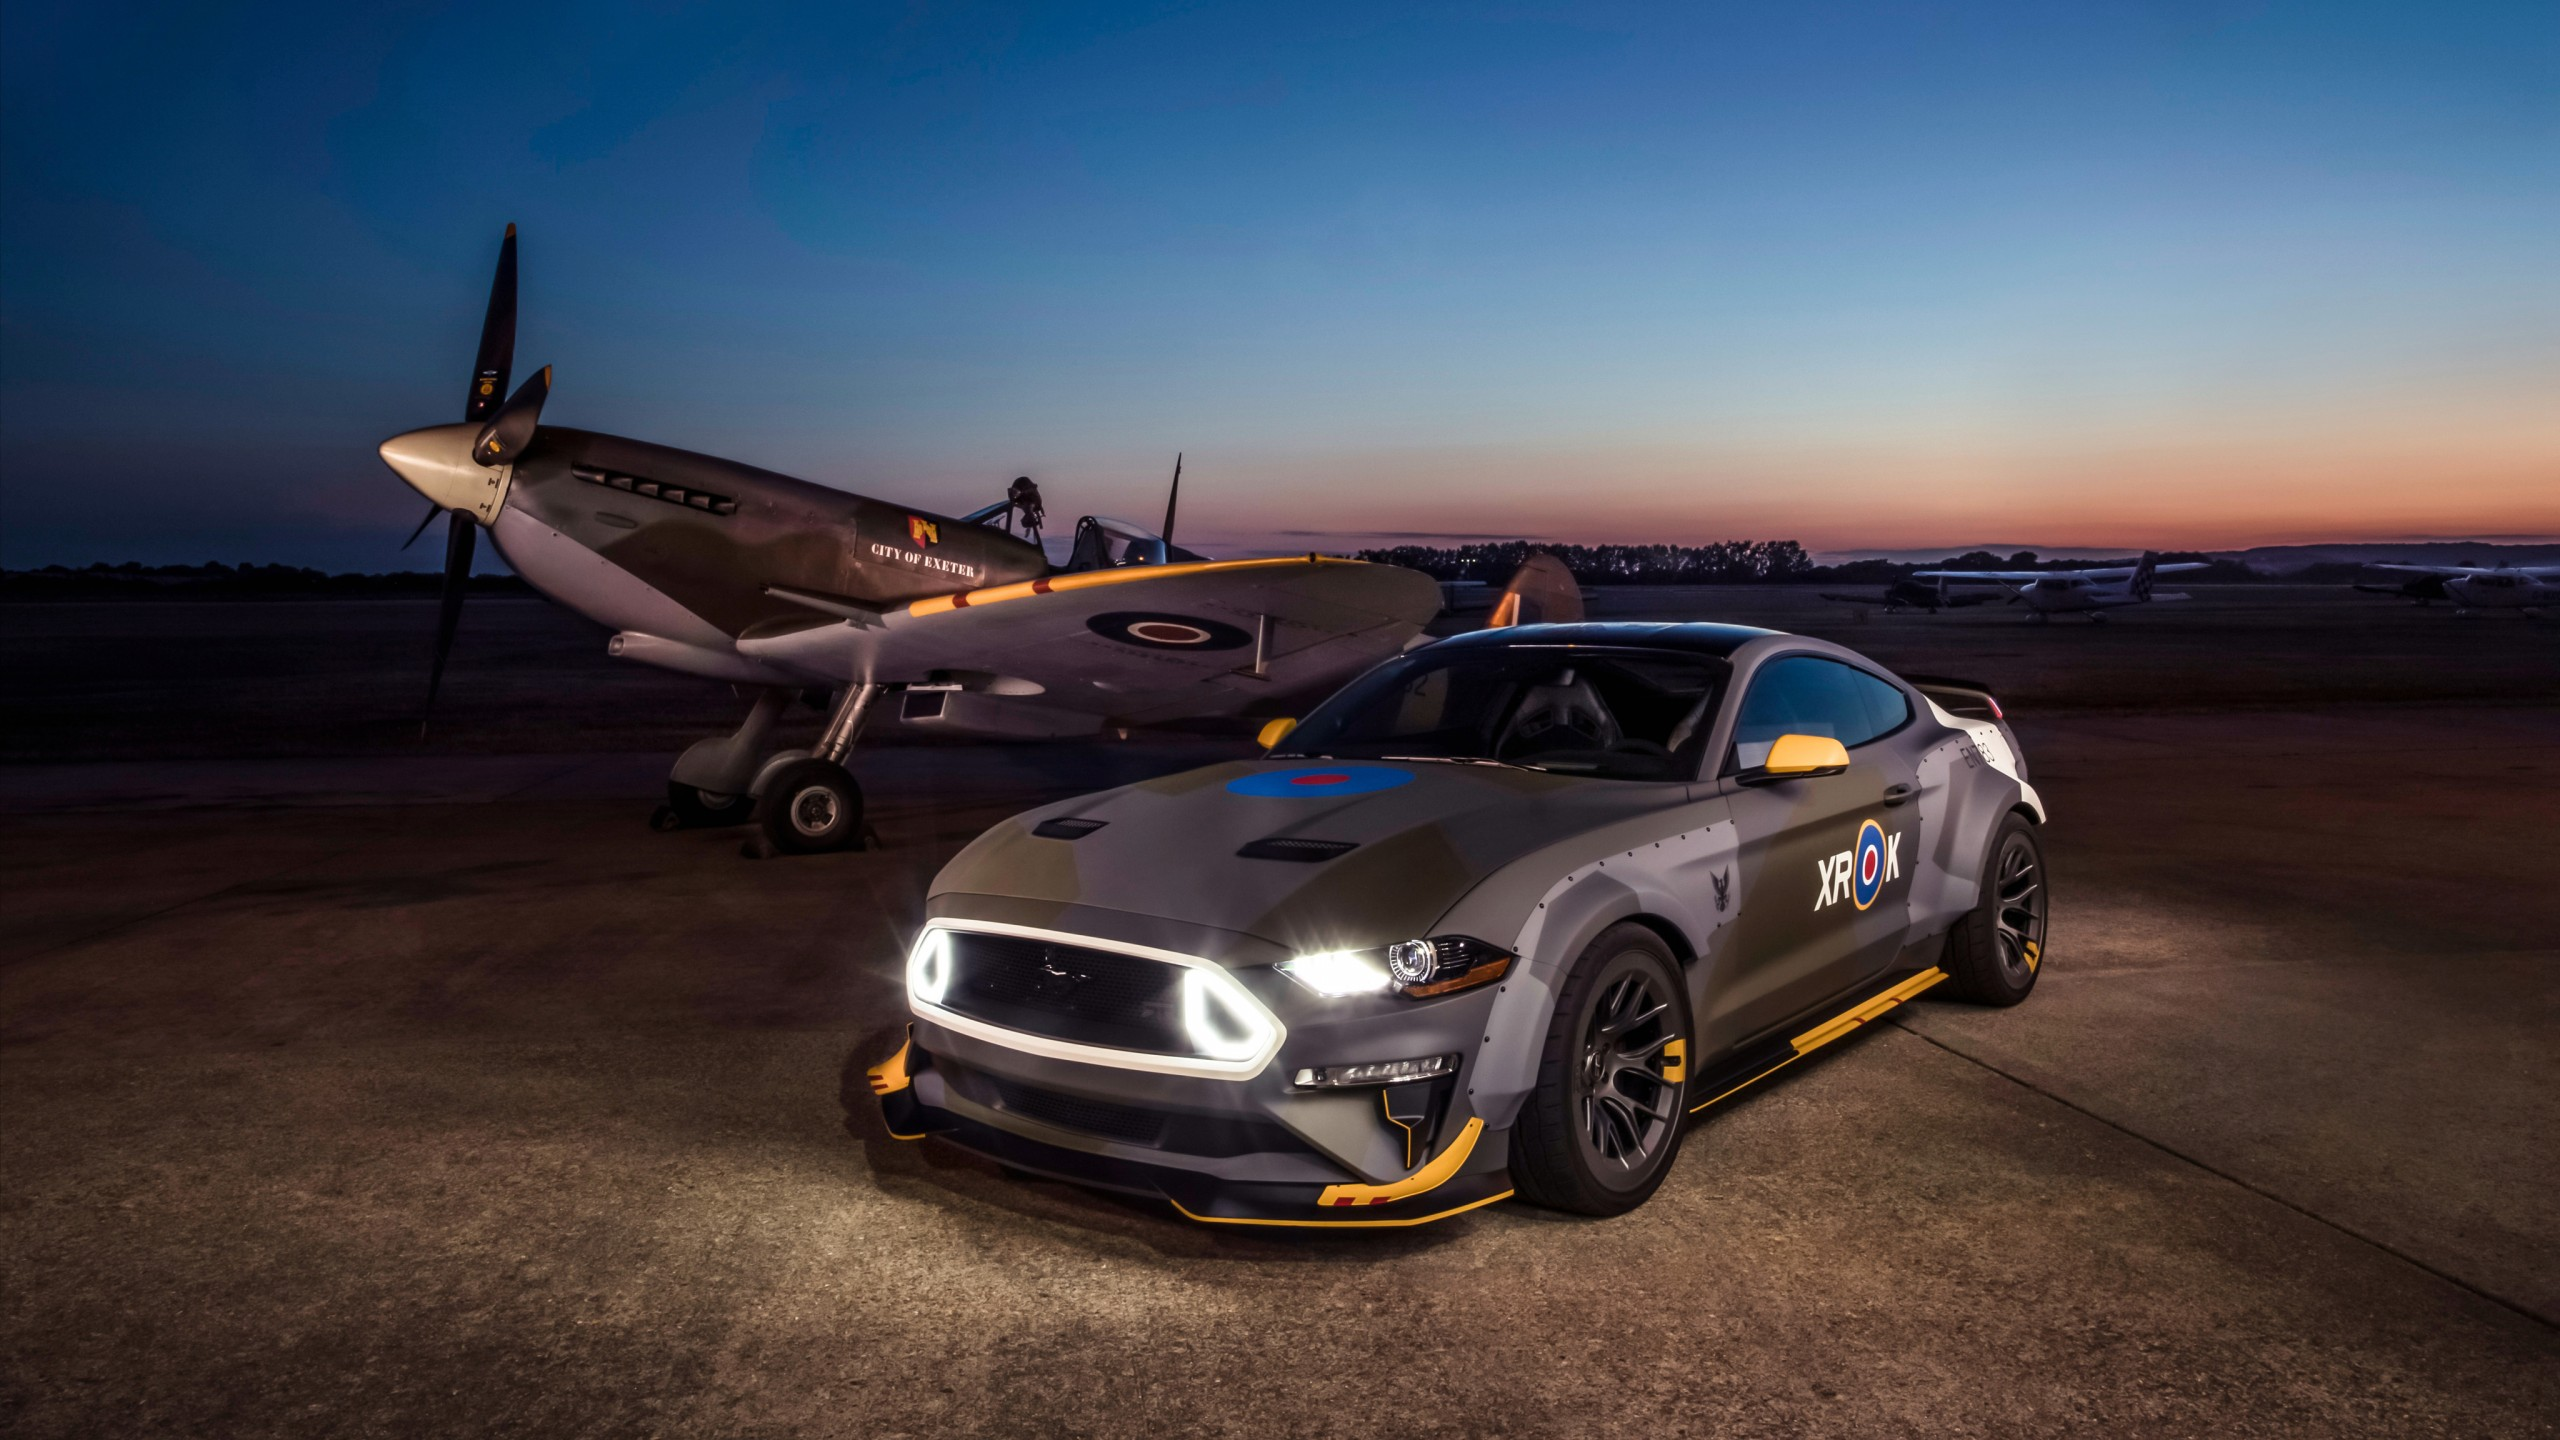 ford eagle squadron mustang gt 2018 4k 2 wallpaper